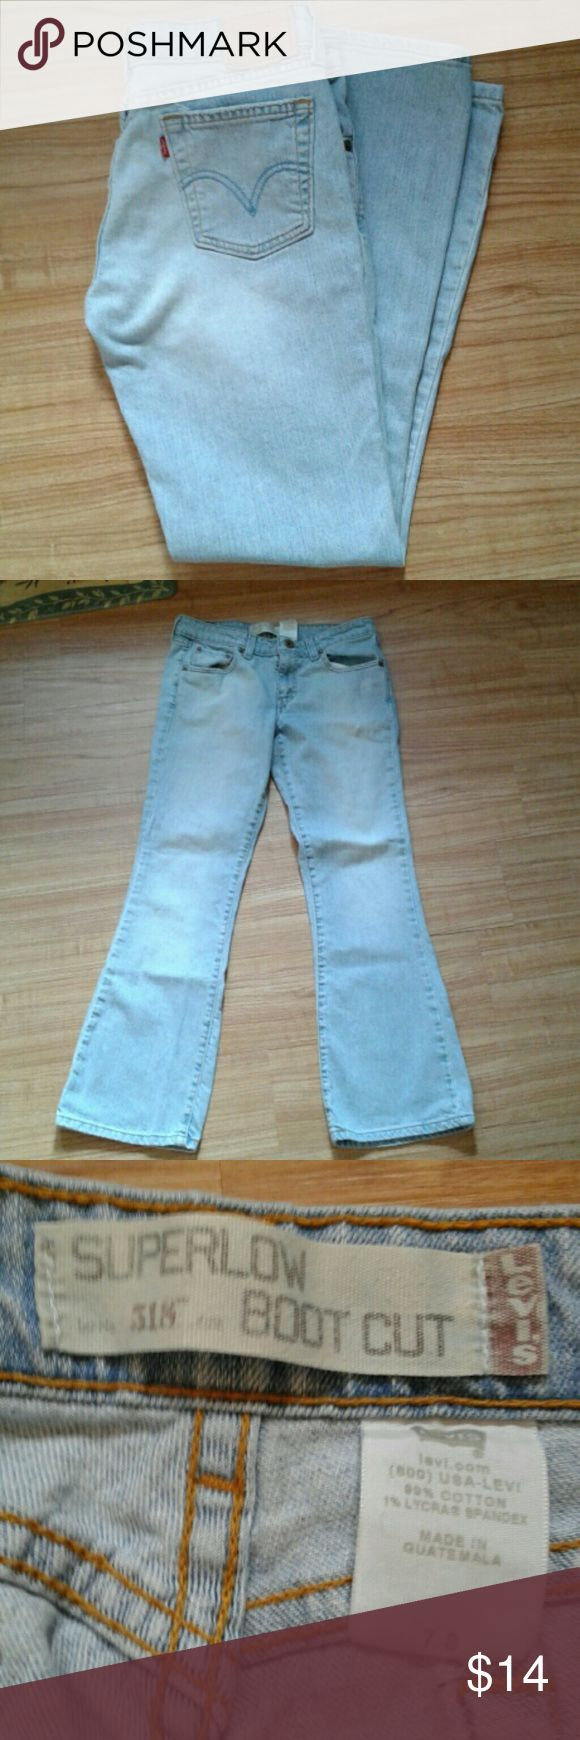 "Levis Superlow jr 7s Light wash. No flaws. Inseam approx 291/2"". 99%cotton, 1%lycra spandex blend Levi's Jeans Boot Cut"